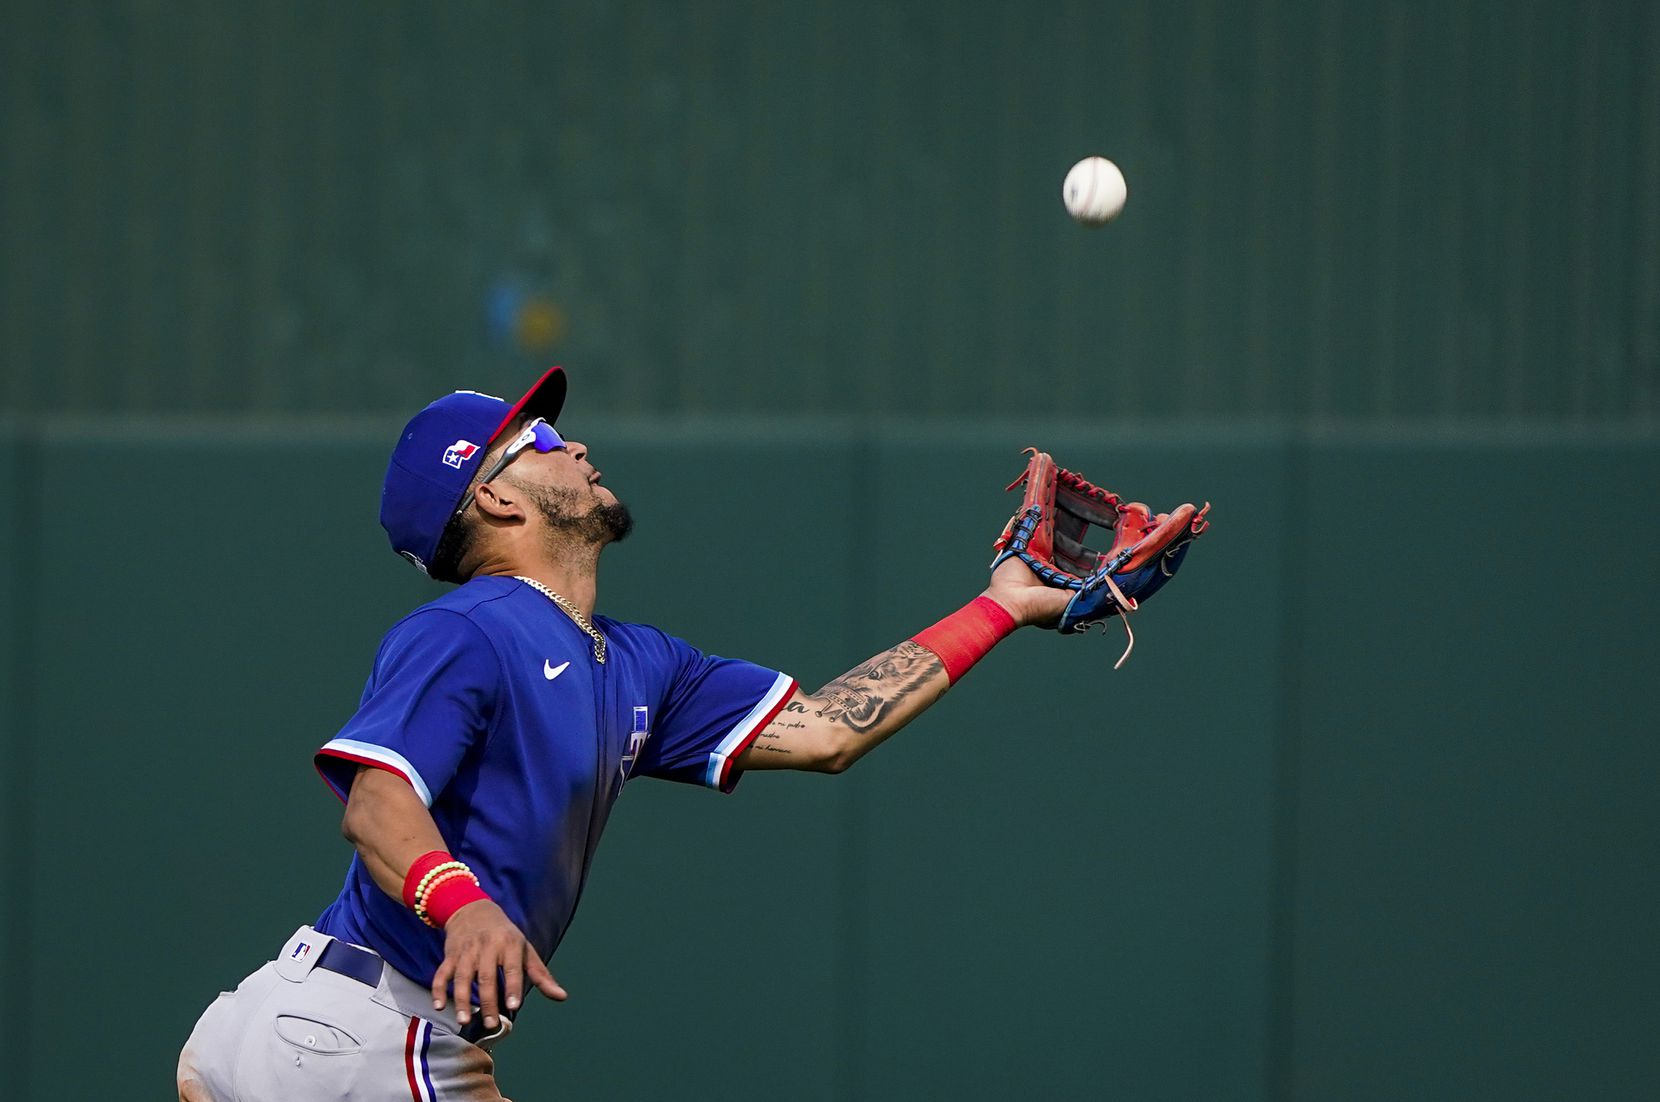 Texas Rangers infielder Anderson Tejeda races back to grab a popup off the bat of Los Angeles Angels second baseman Luis Rengifo during the fifth inning of a spring training game at Tempe Diablo Stadium on Friday, Feb. 28, 2020, in Tempe, Ariz.